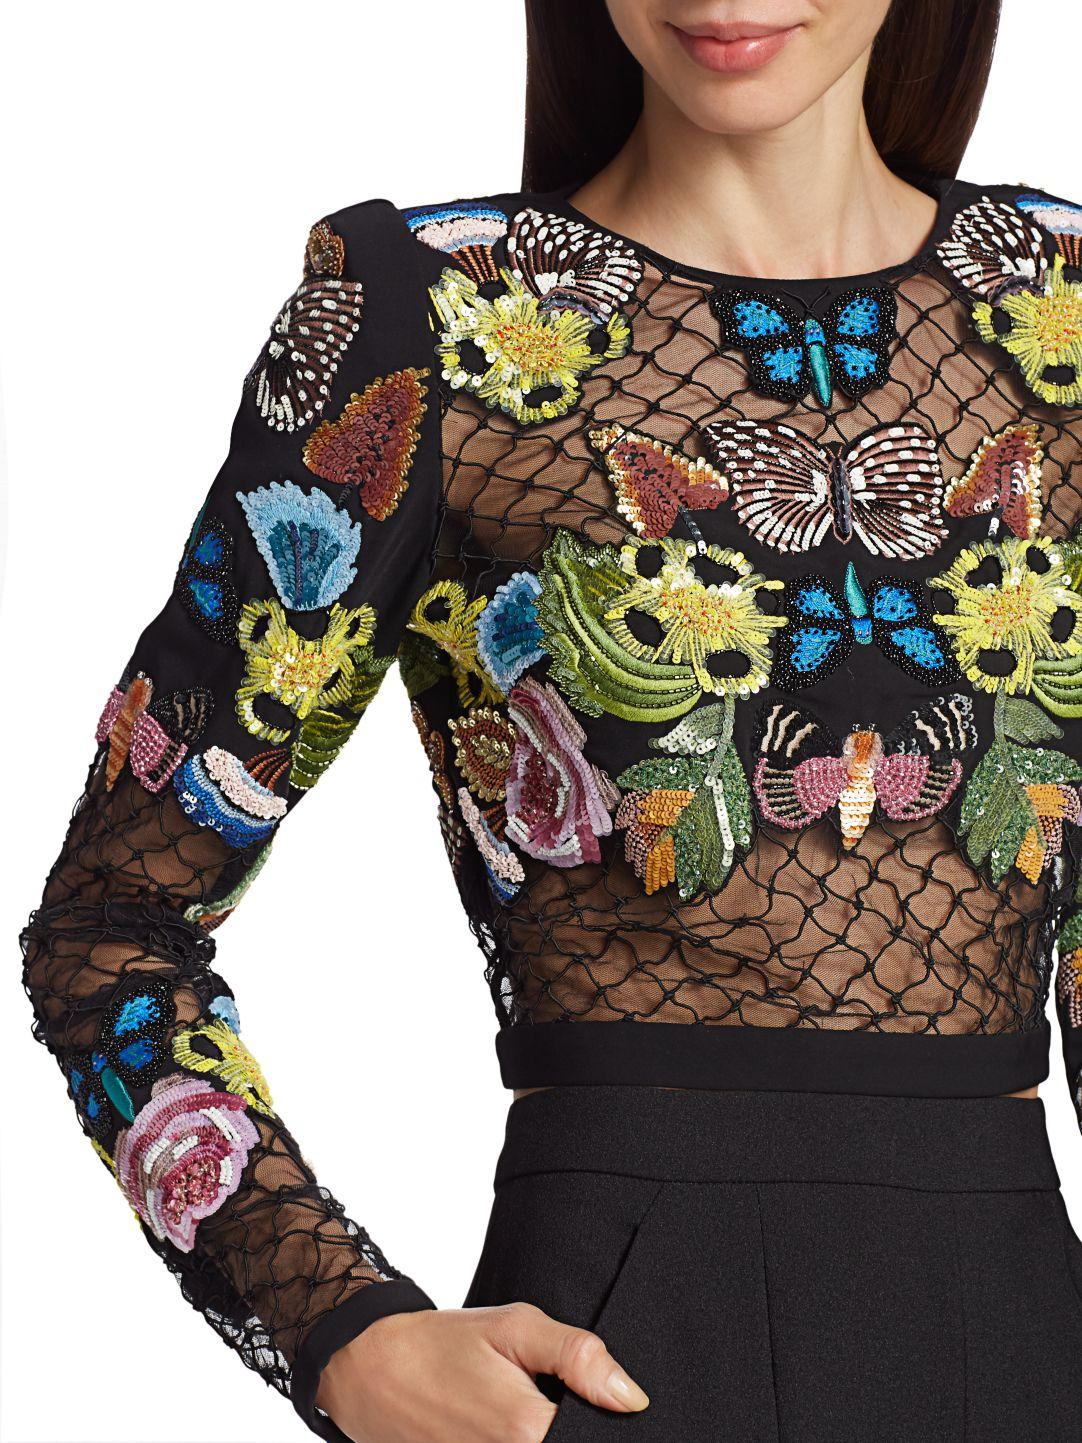 HAND EMBROIDERED MESH TOP 5